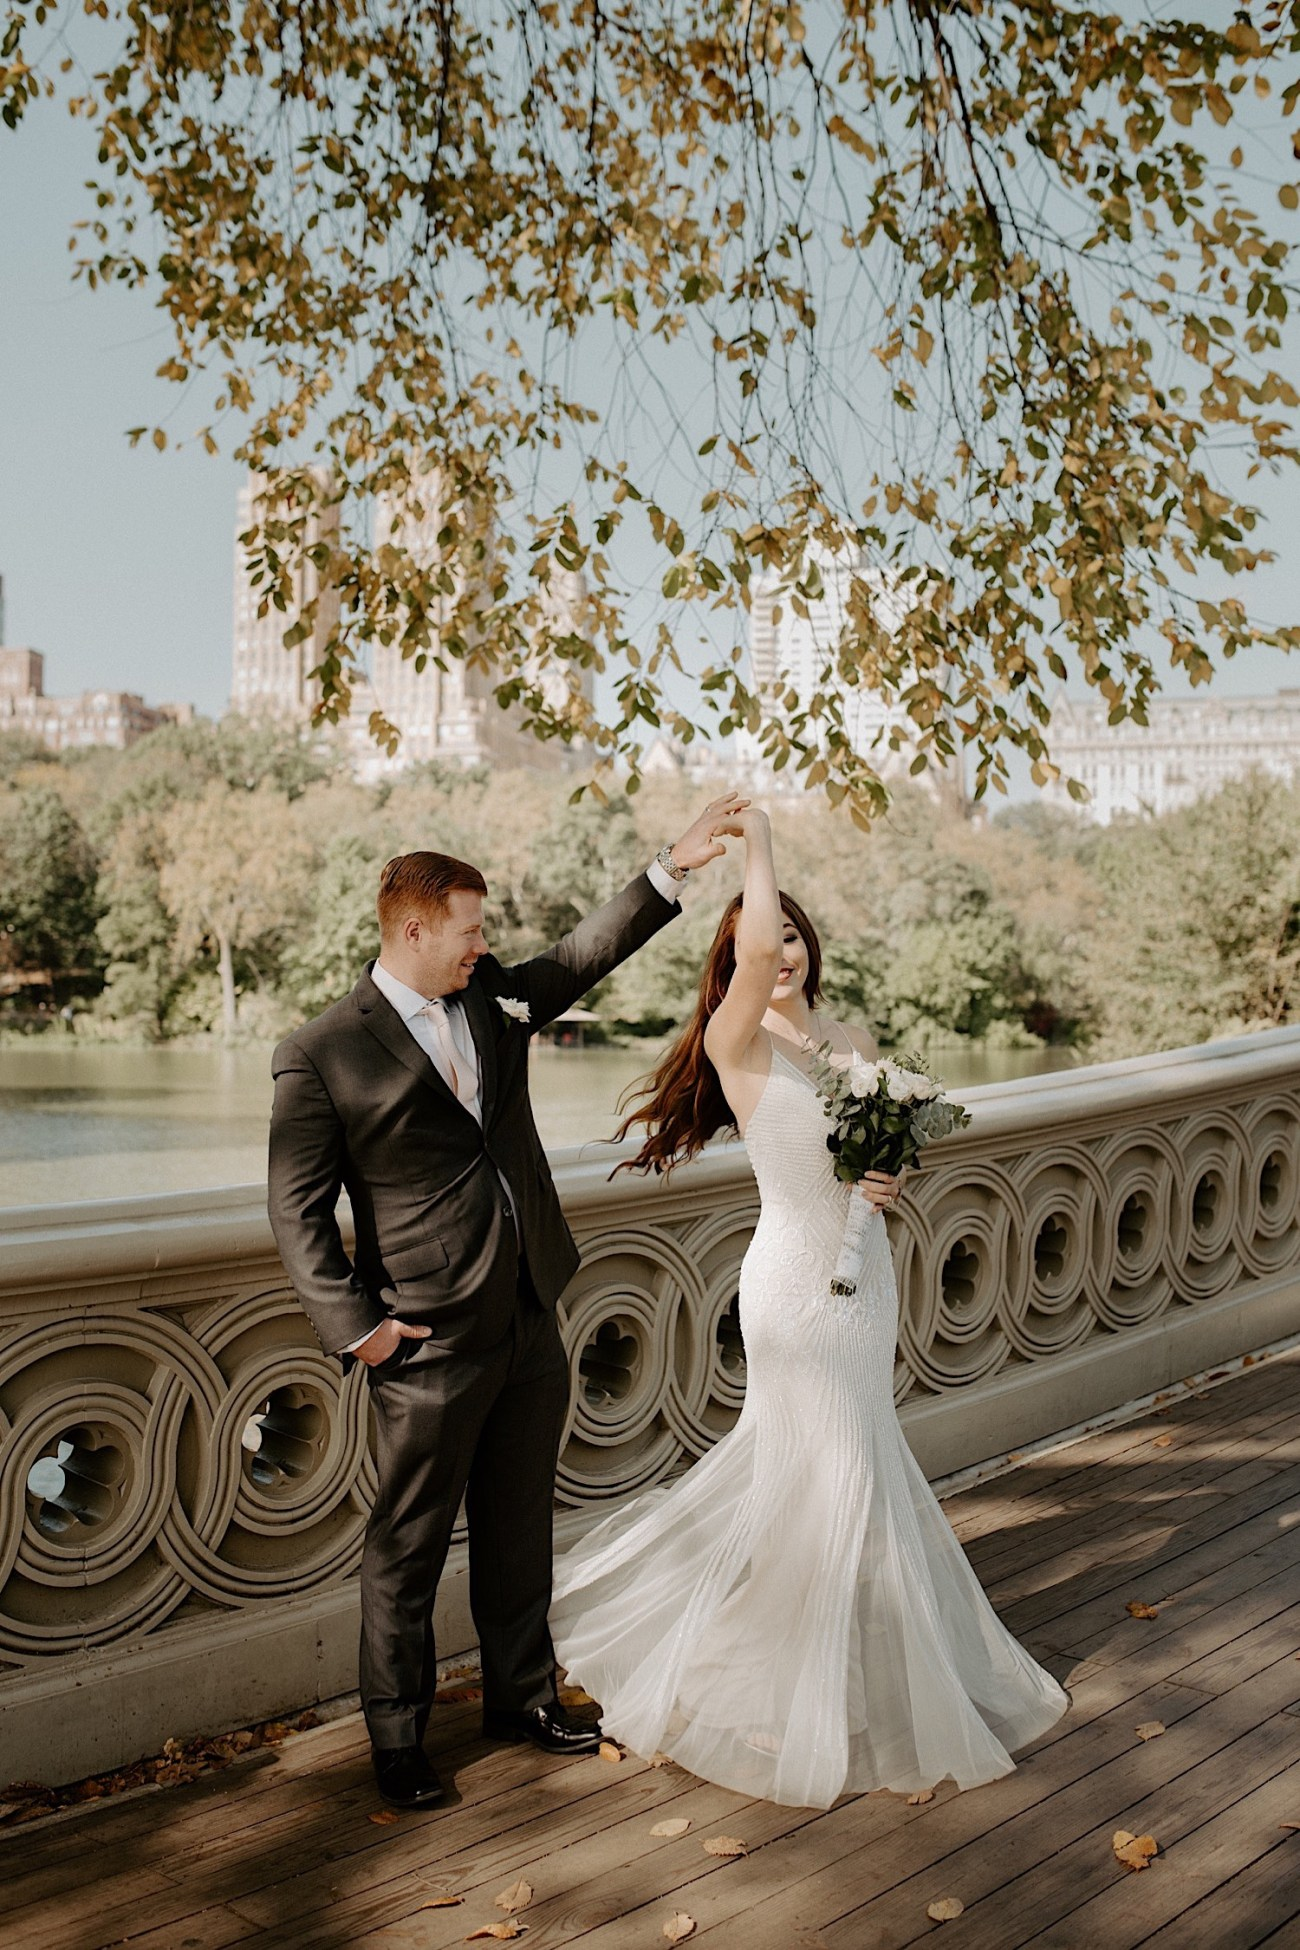 Central Park Wedding Photos Central Park Elopement NYC Wedding Photographer 28